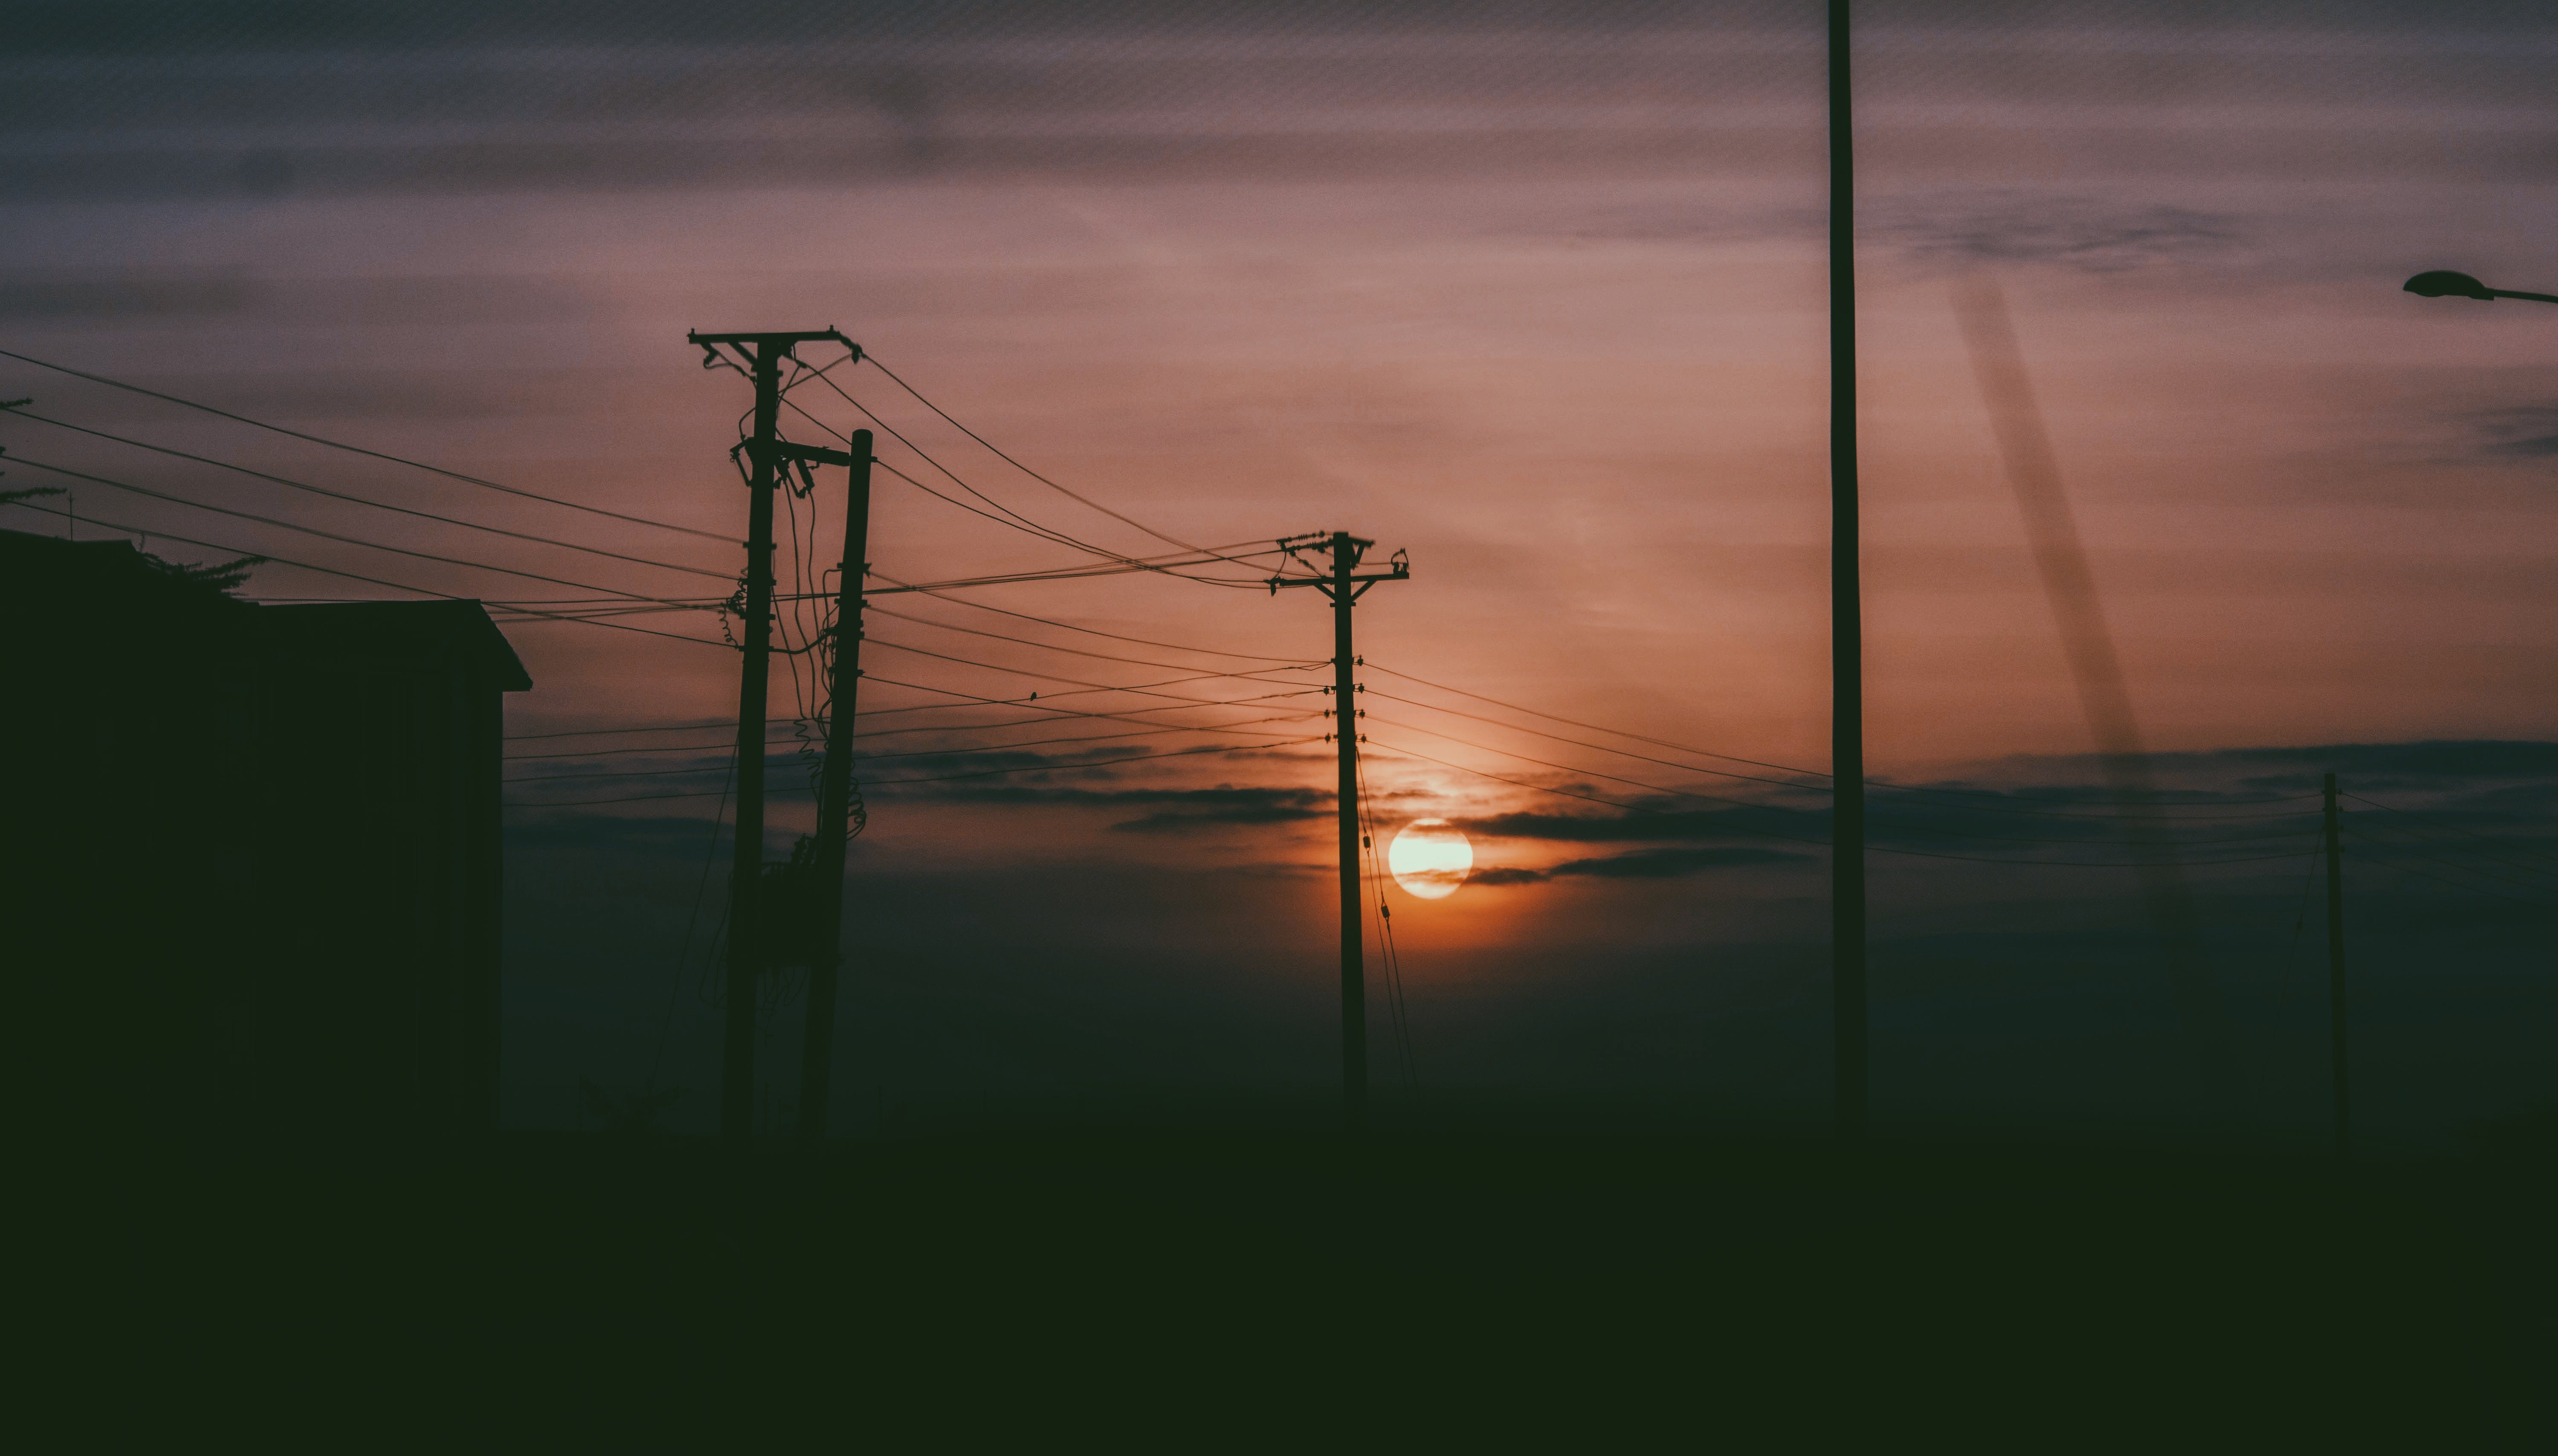 Silhouette Photo Of Electric Posts During Sunset